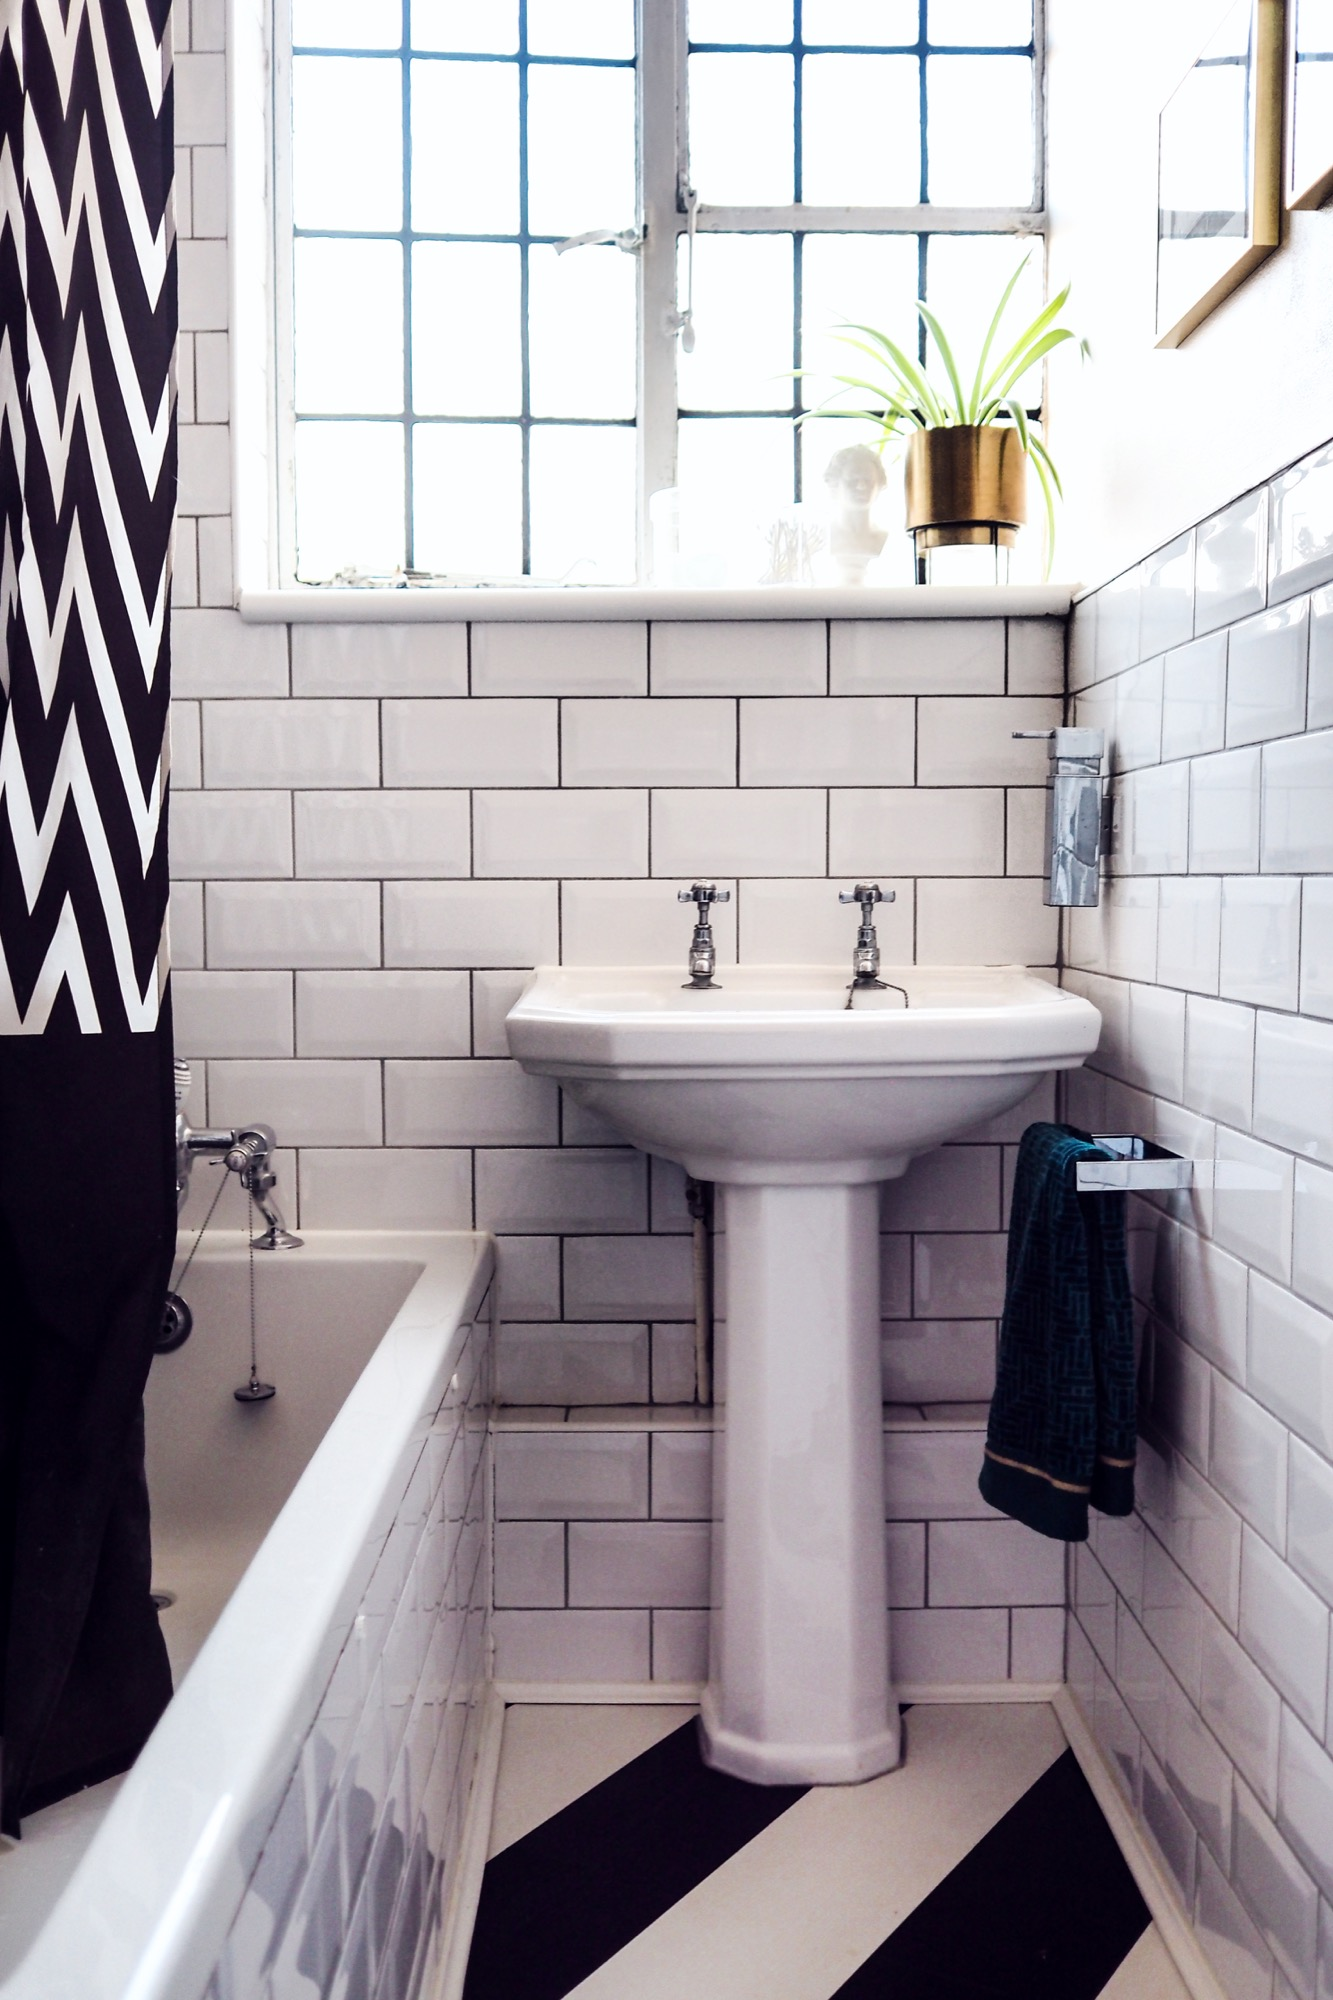 Really pleased with how this blush pink and green bathroom makeover turned out! It works so well with the white subway tiles and dark grout. The brass accents just finish it off!